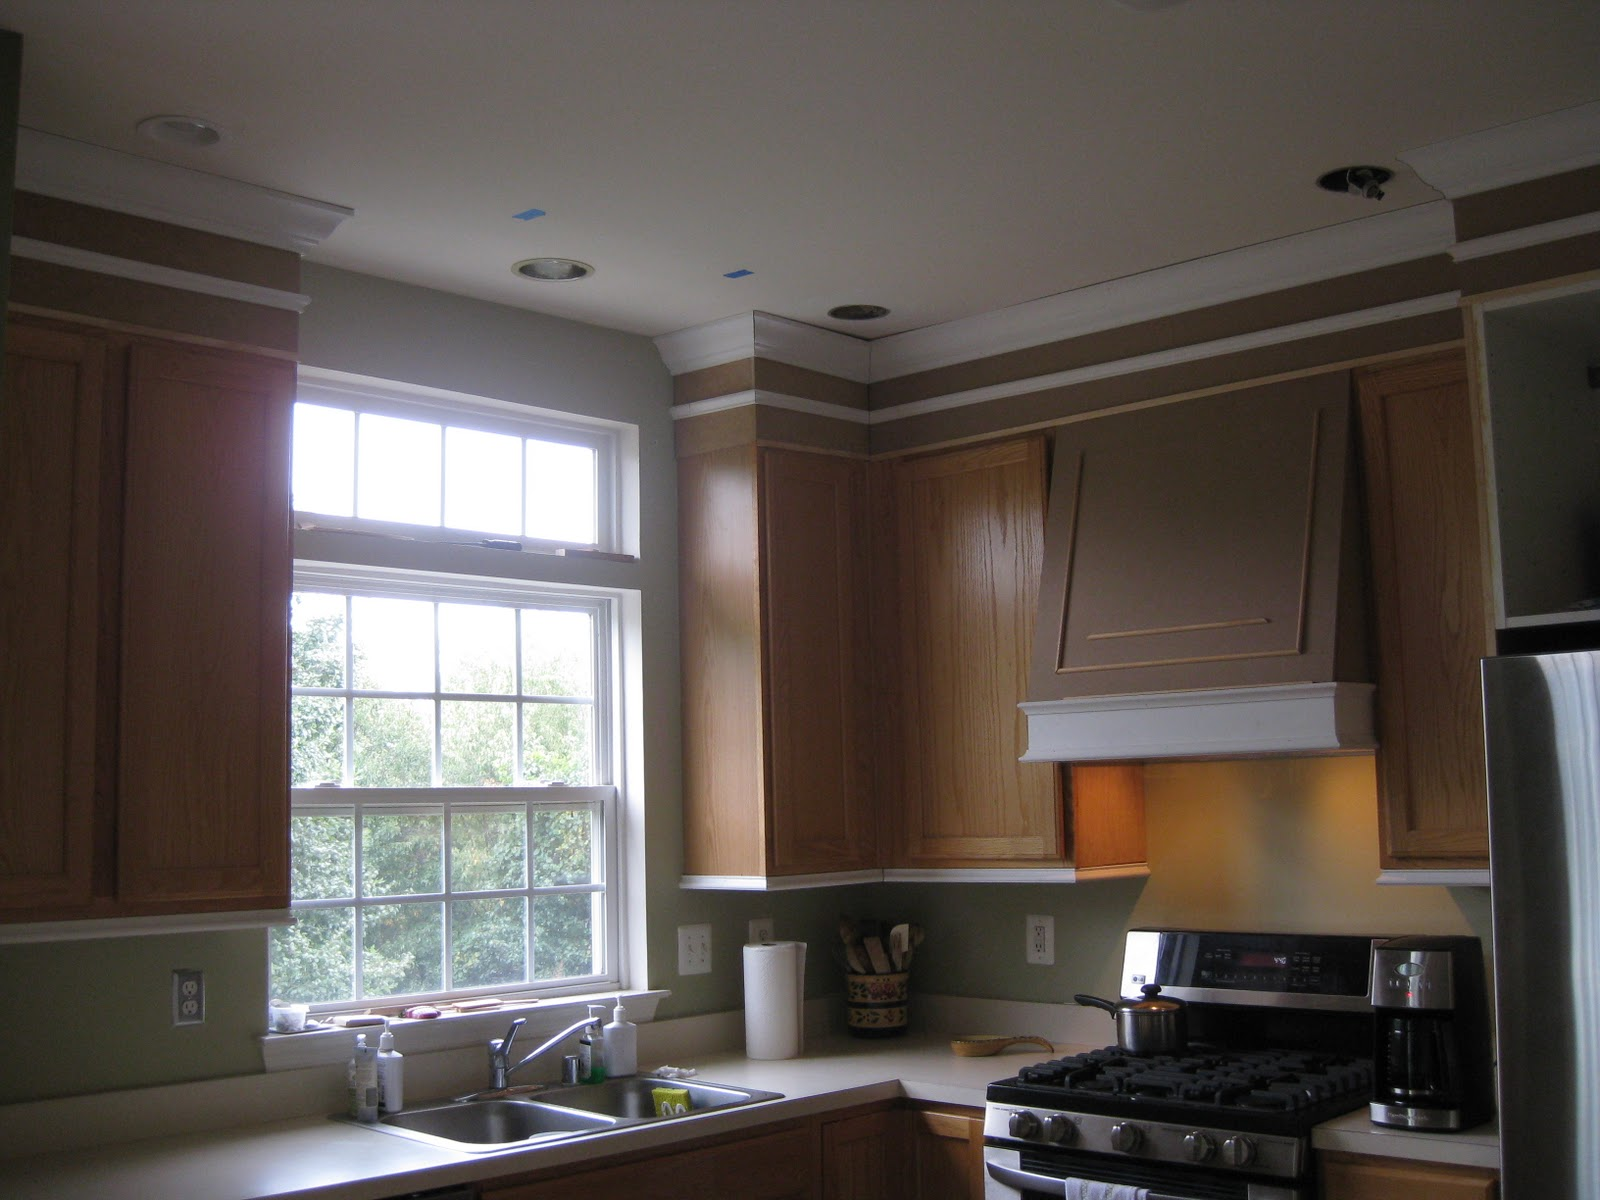 Crown Moulding Above Kitchen Cabinets Remodelando La Casa Adding Moldings To Your Kitchen Cabinets